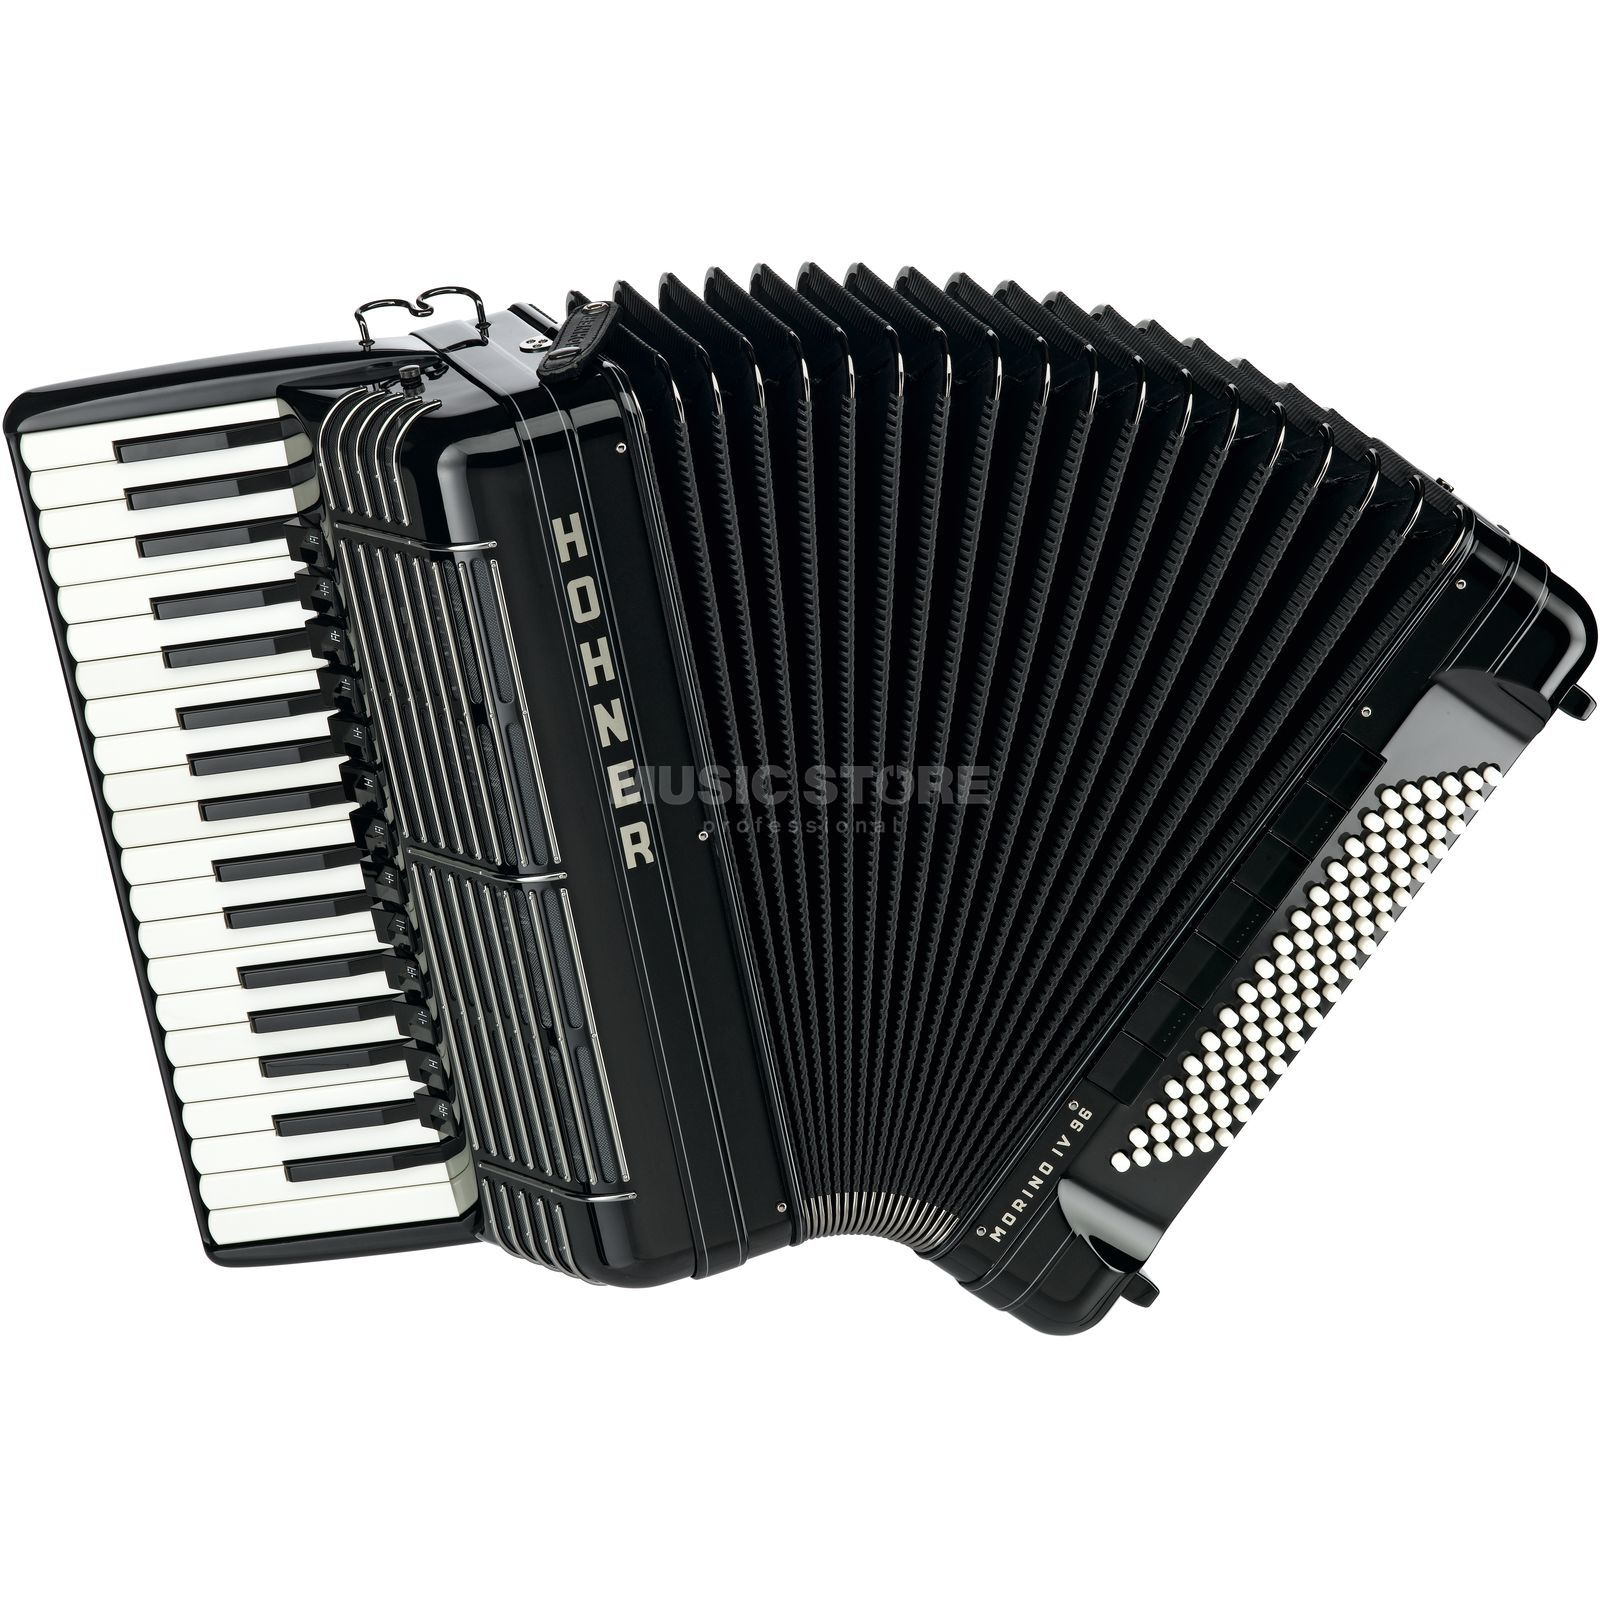 Hohner Piano-Accordion Morino+ 96 bass, IV voices, Black Produktbillede